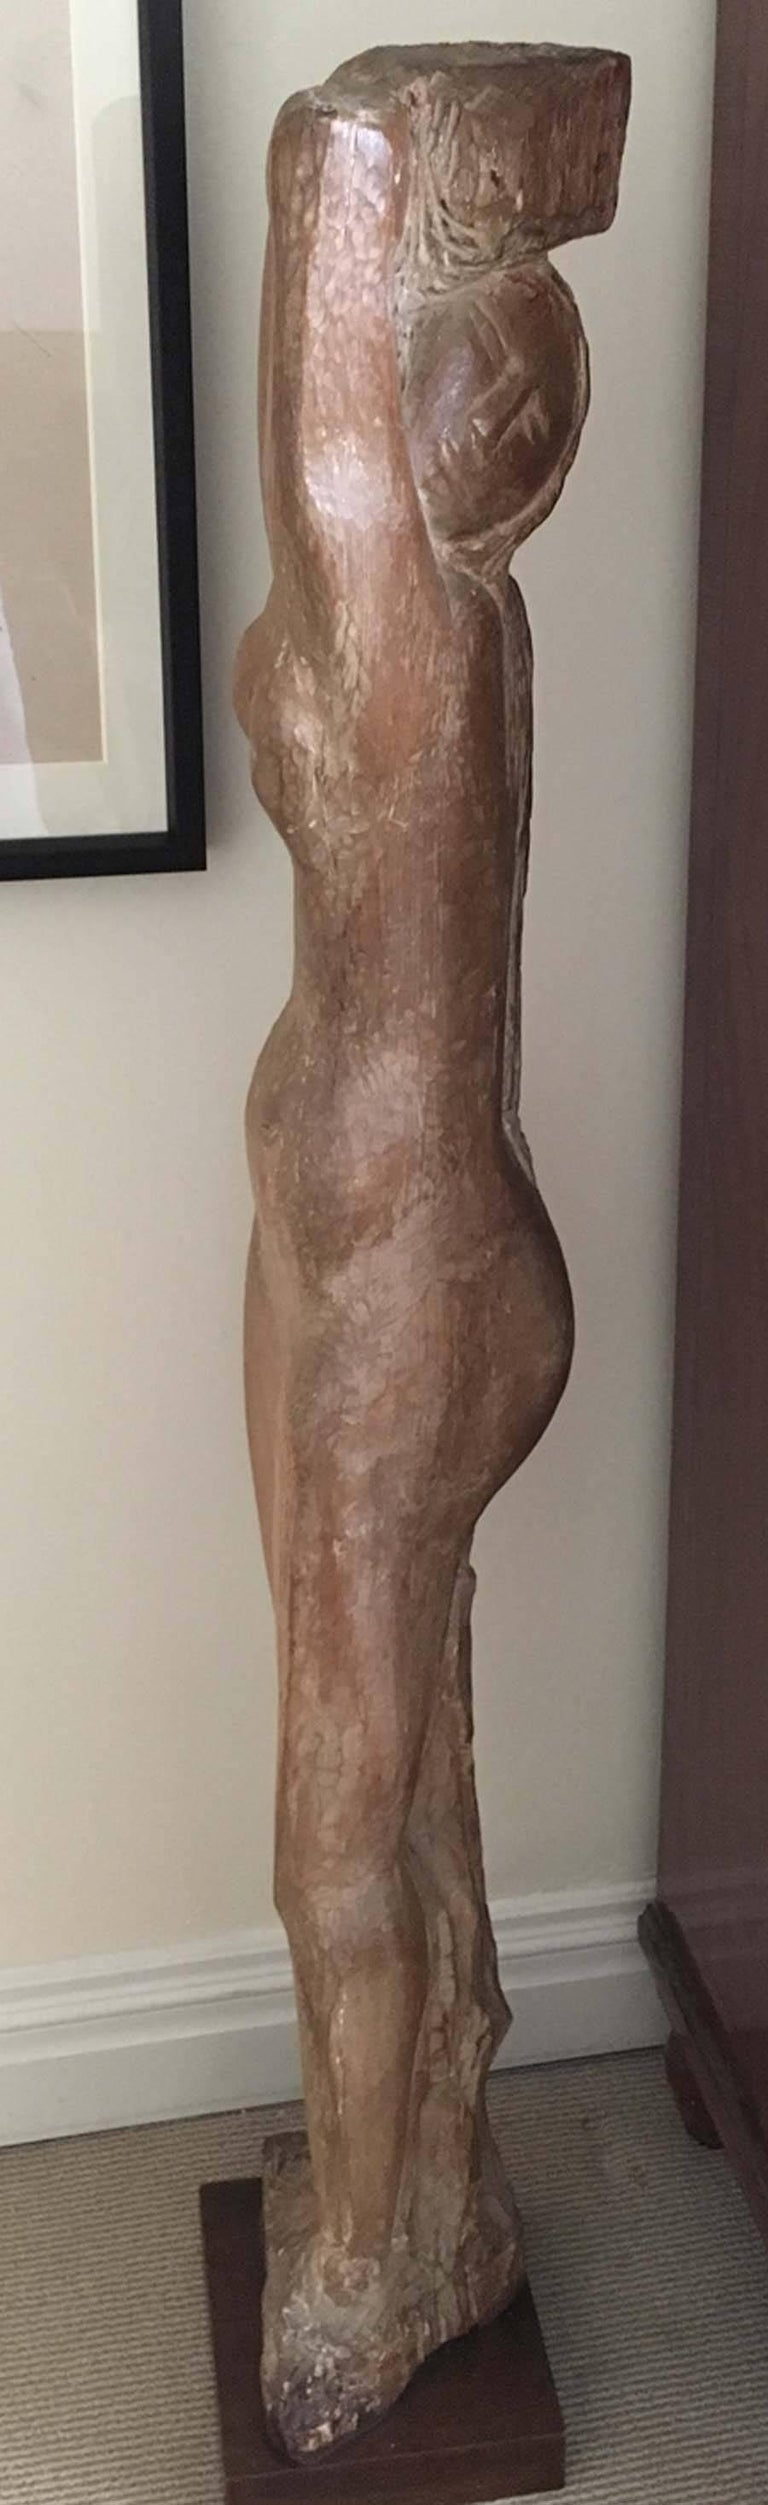 Standing Nude - Cubist Sculpture by Lorrie Goulet